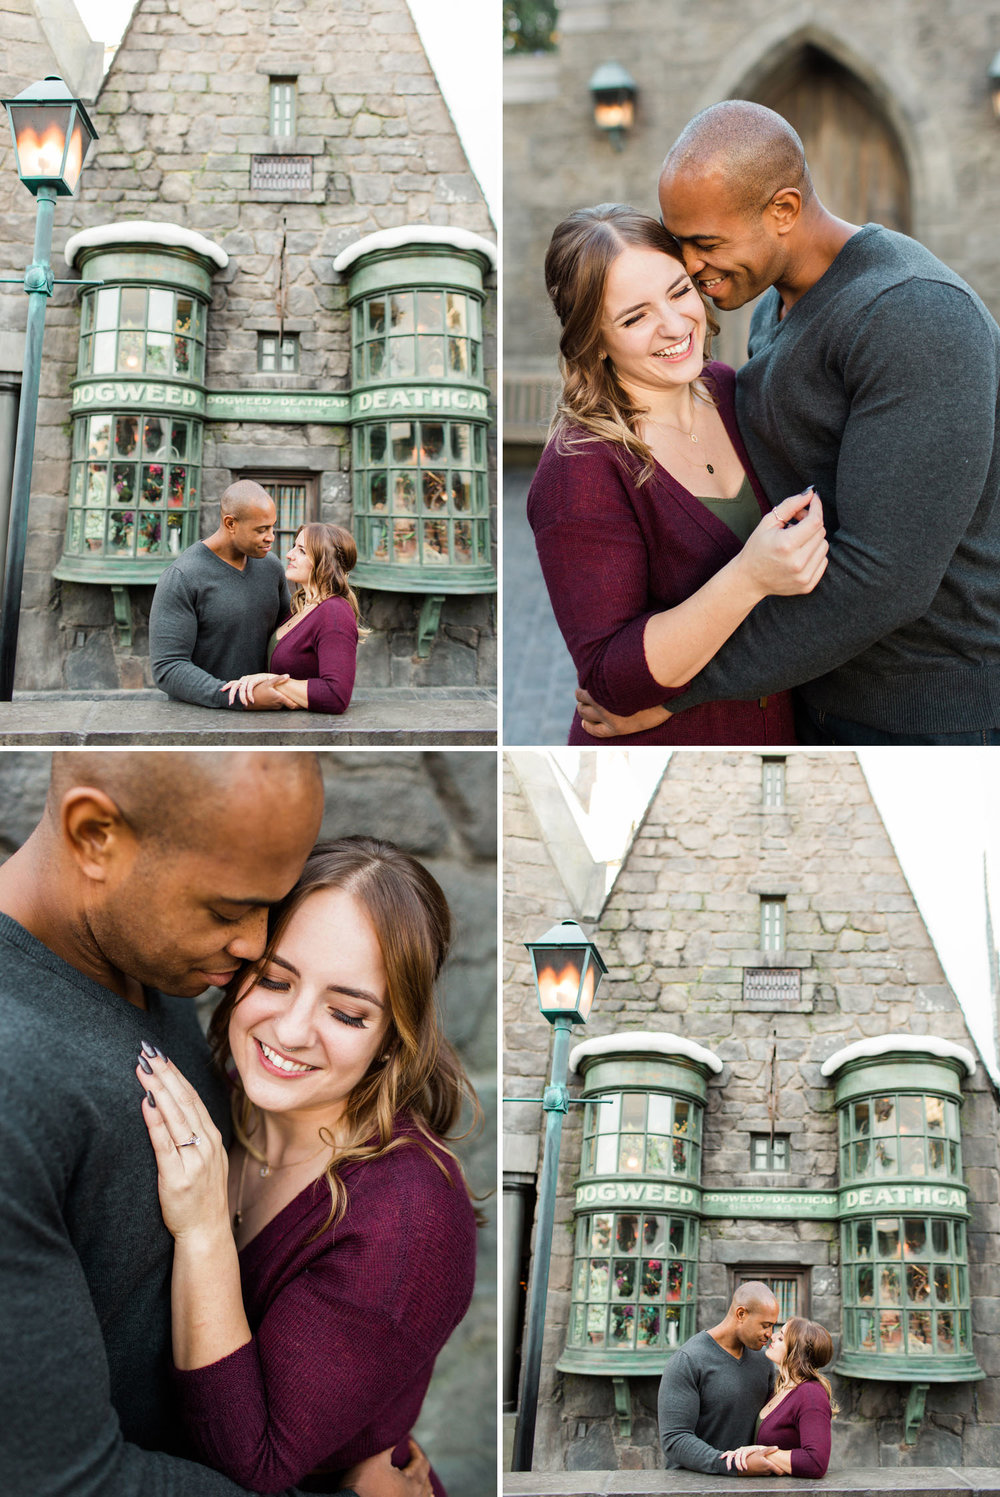 thevondys.com | Harry Potter Engagement | Los Angeles Wedding Photography | The Vondys Southern California Destination Photographer